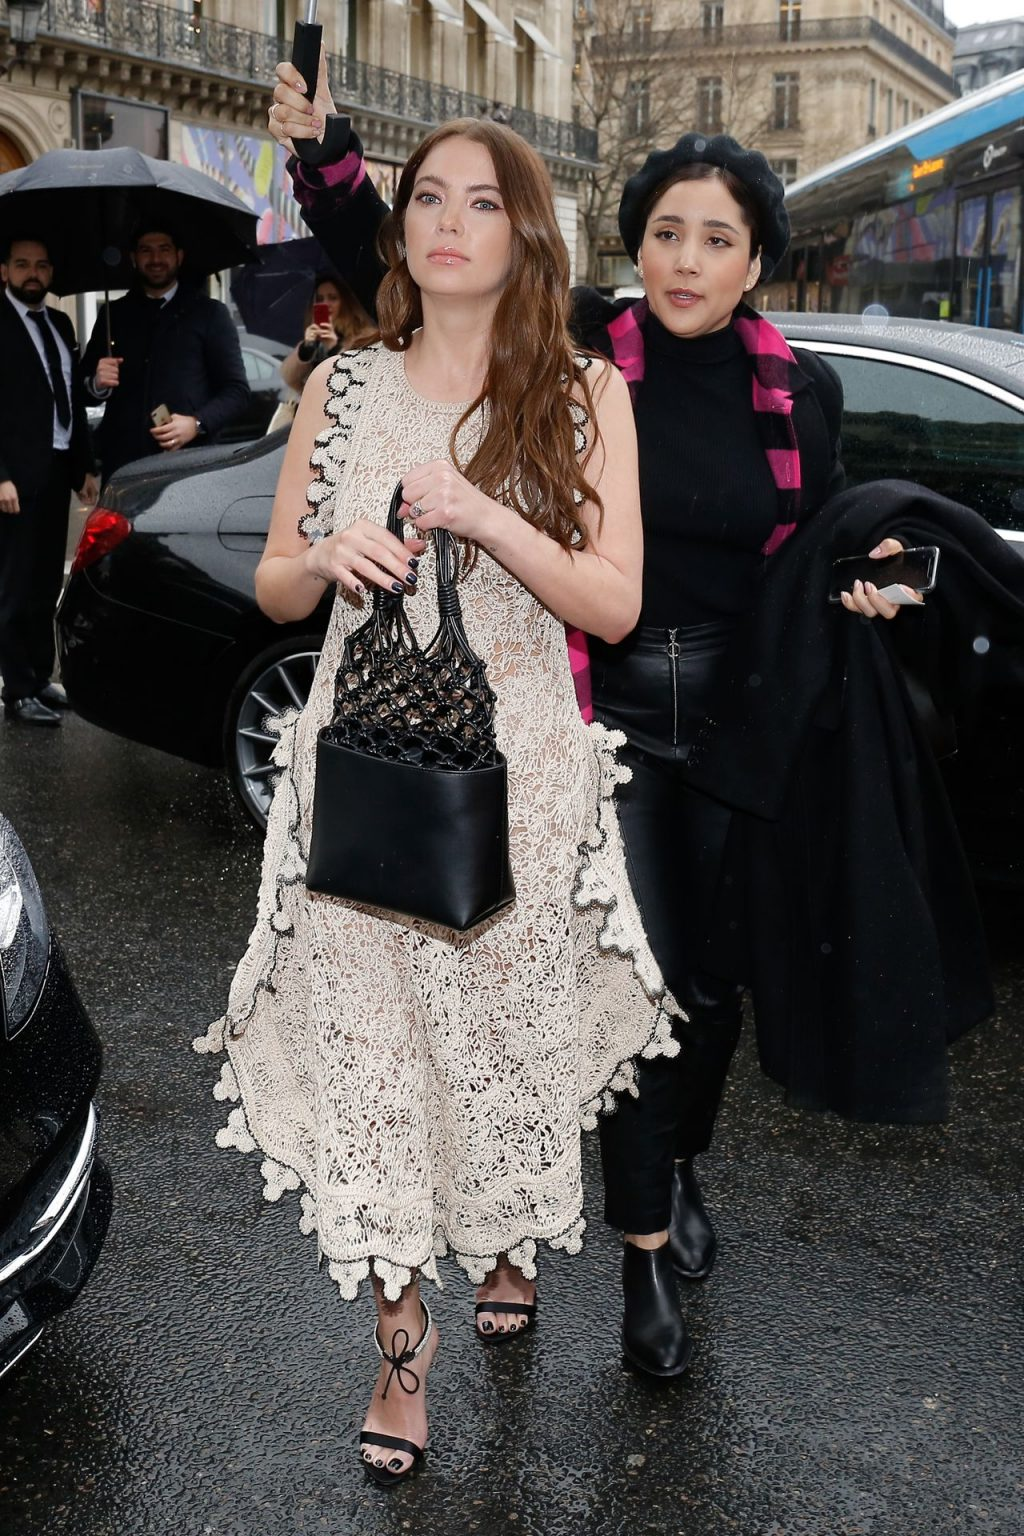 Ashley Benson Shows Her Figure at the Stella Mccartney Show in Paris (112 Photos)